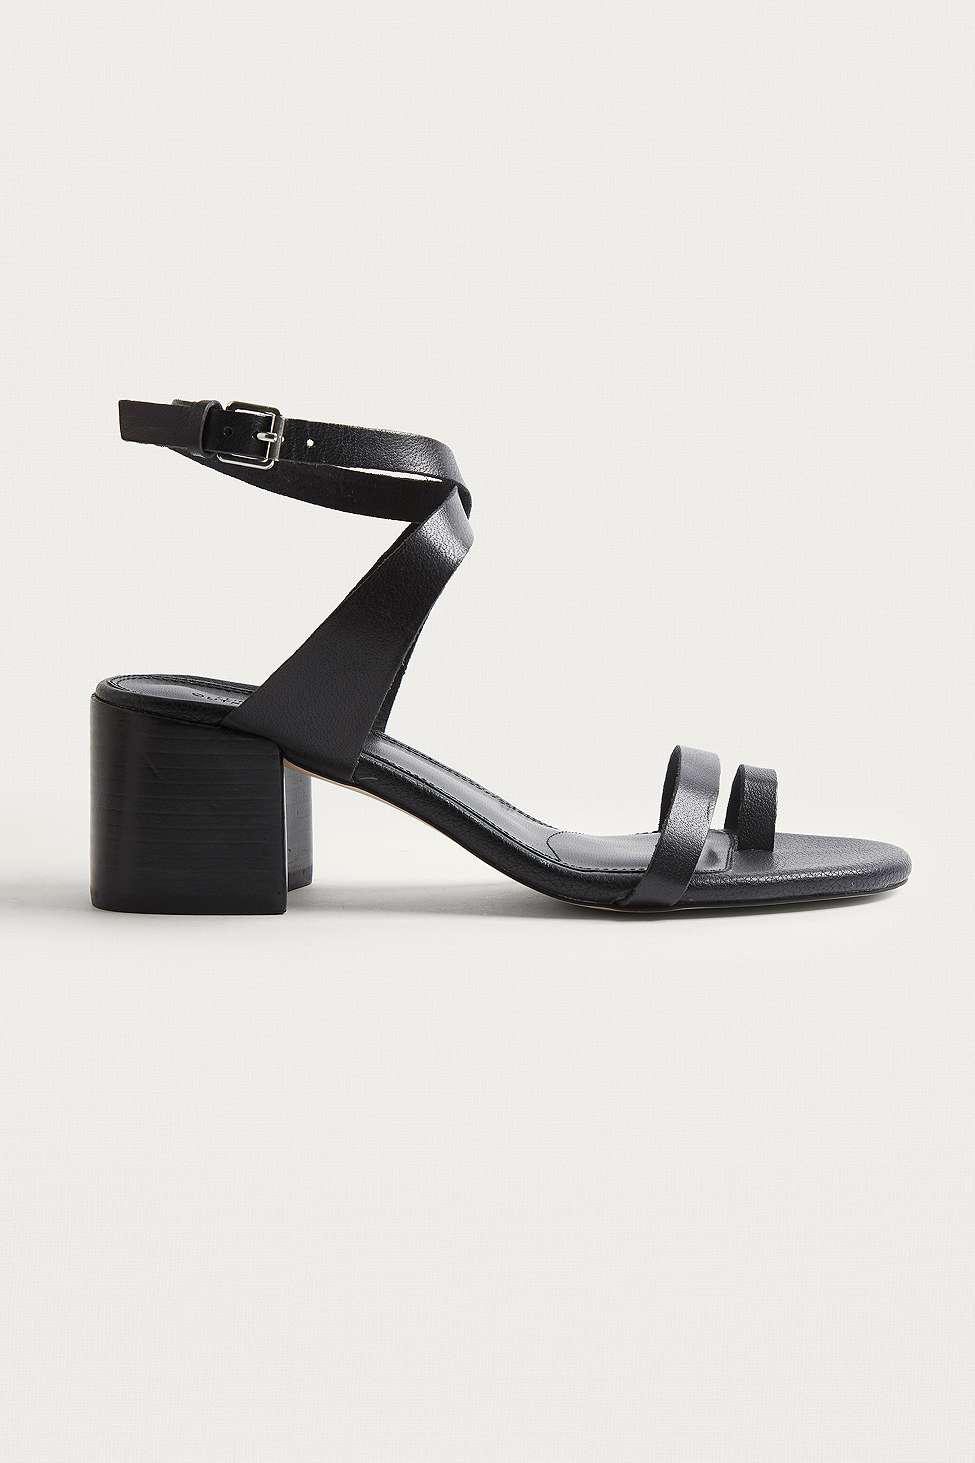 8d58bbf32 Urban Outfitters Uo Halle Toe Loop Sandals - Womens Uk 8 in Black - Lyst